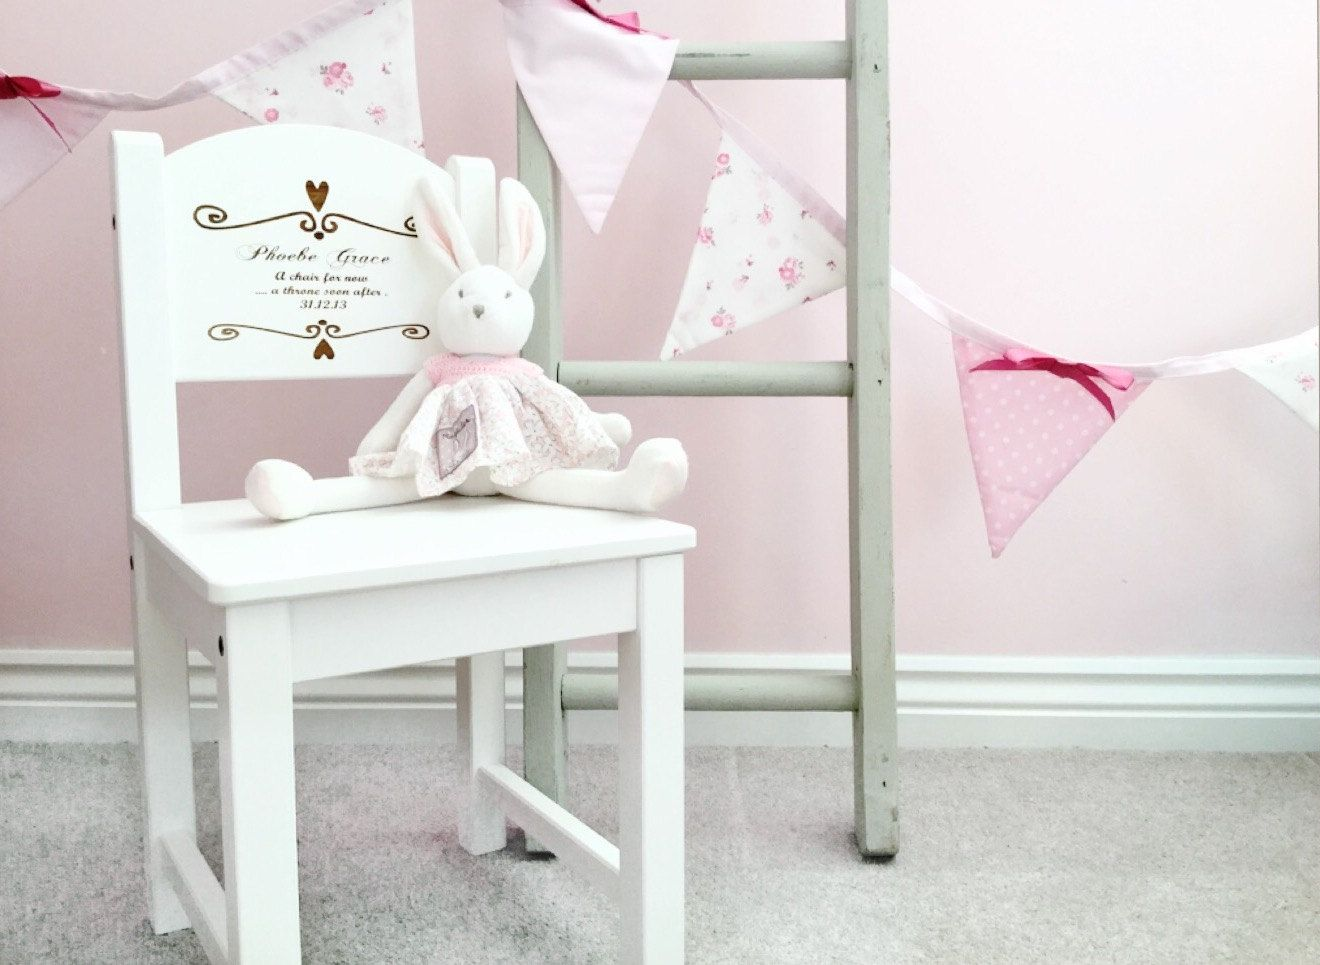 Personalised chair 1st birthday present first birthday gift personalised chair 1st birthday present first birthday gift new baby gift christening negle Image collections